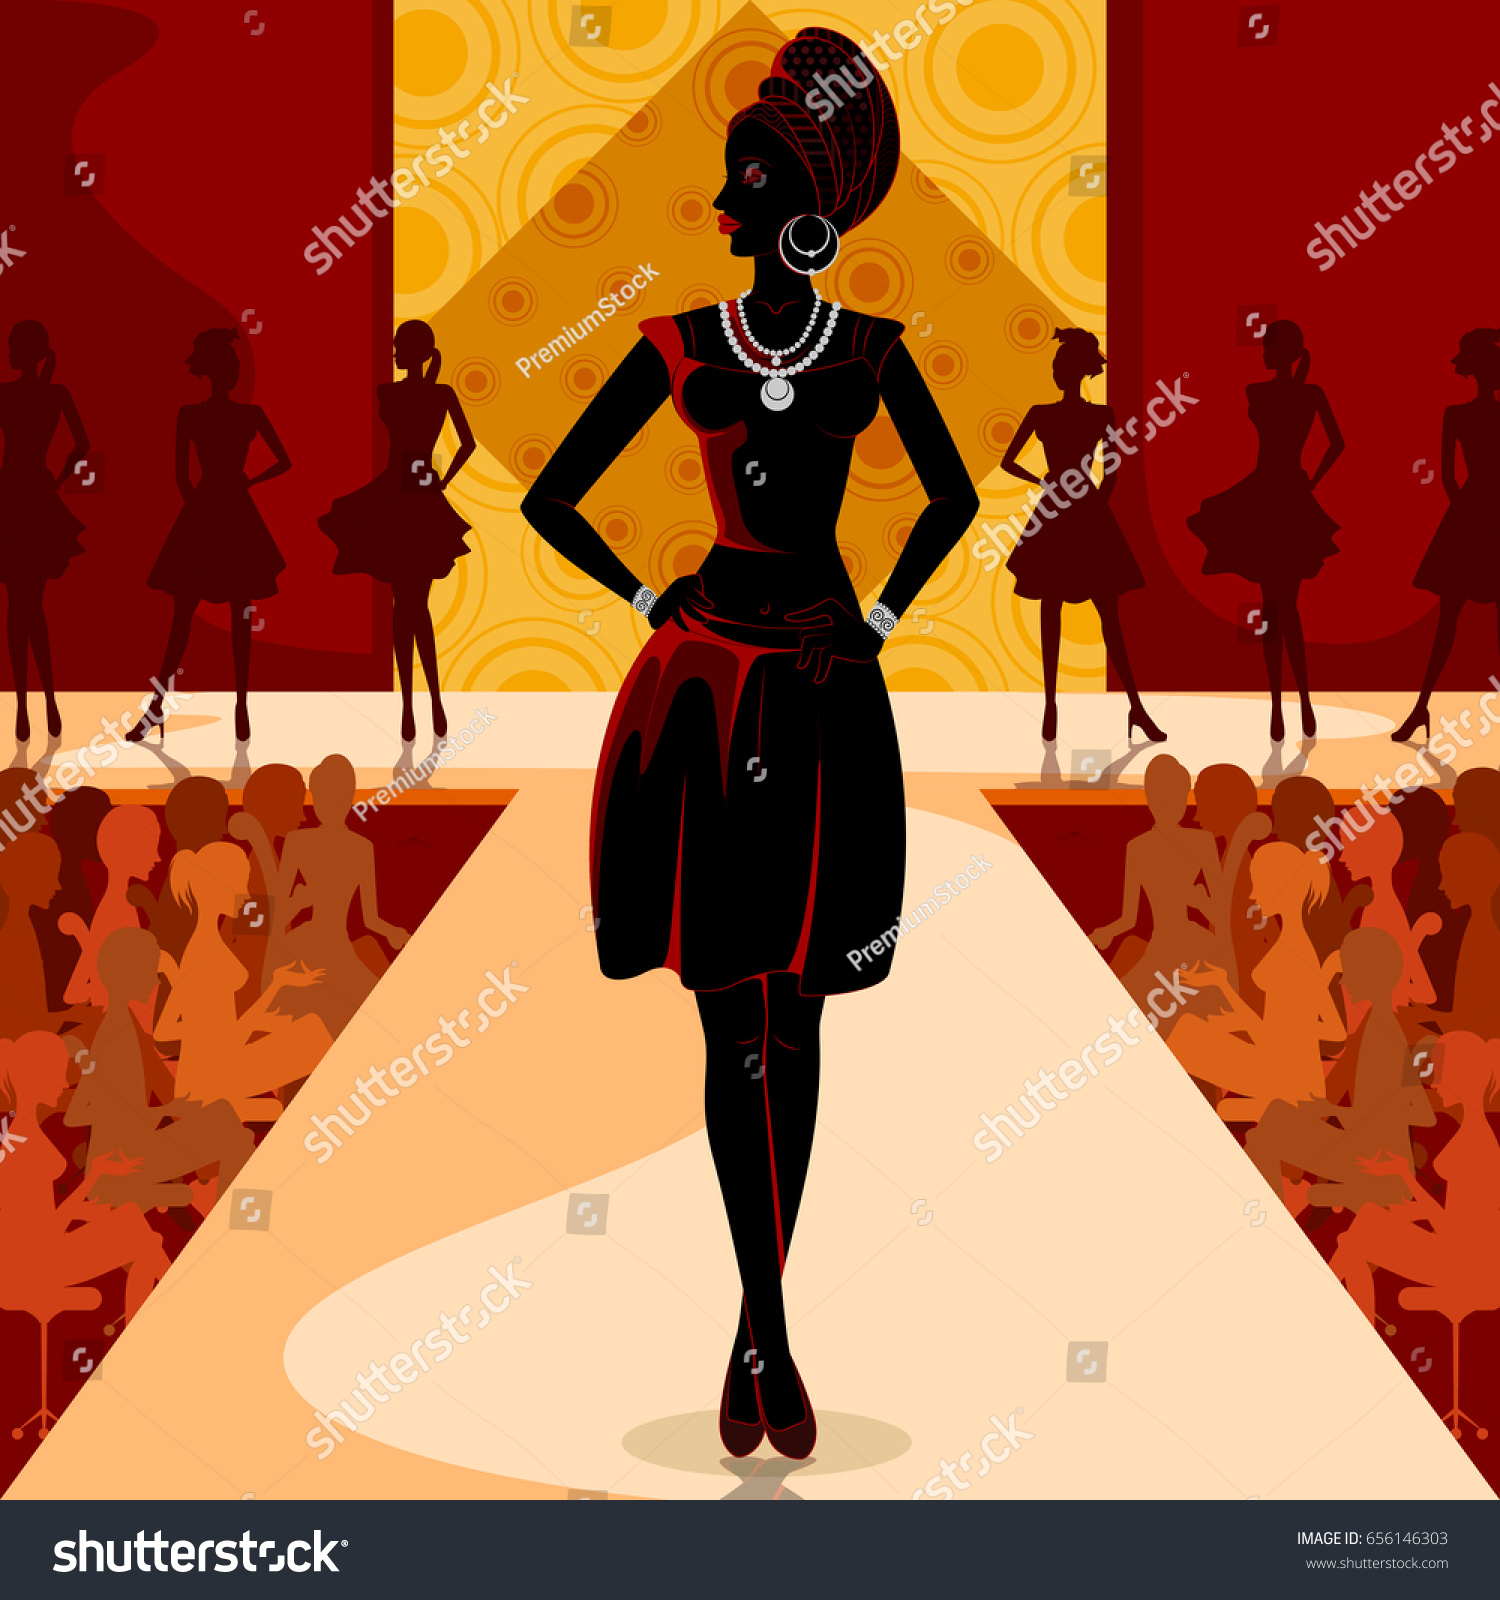 vector design beautiful african black woman stock vector royalty free 656146303 https www shutterstock com image vector vector design beautiful african black woman 656146303